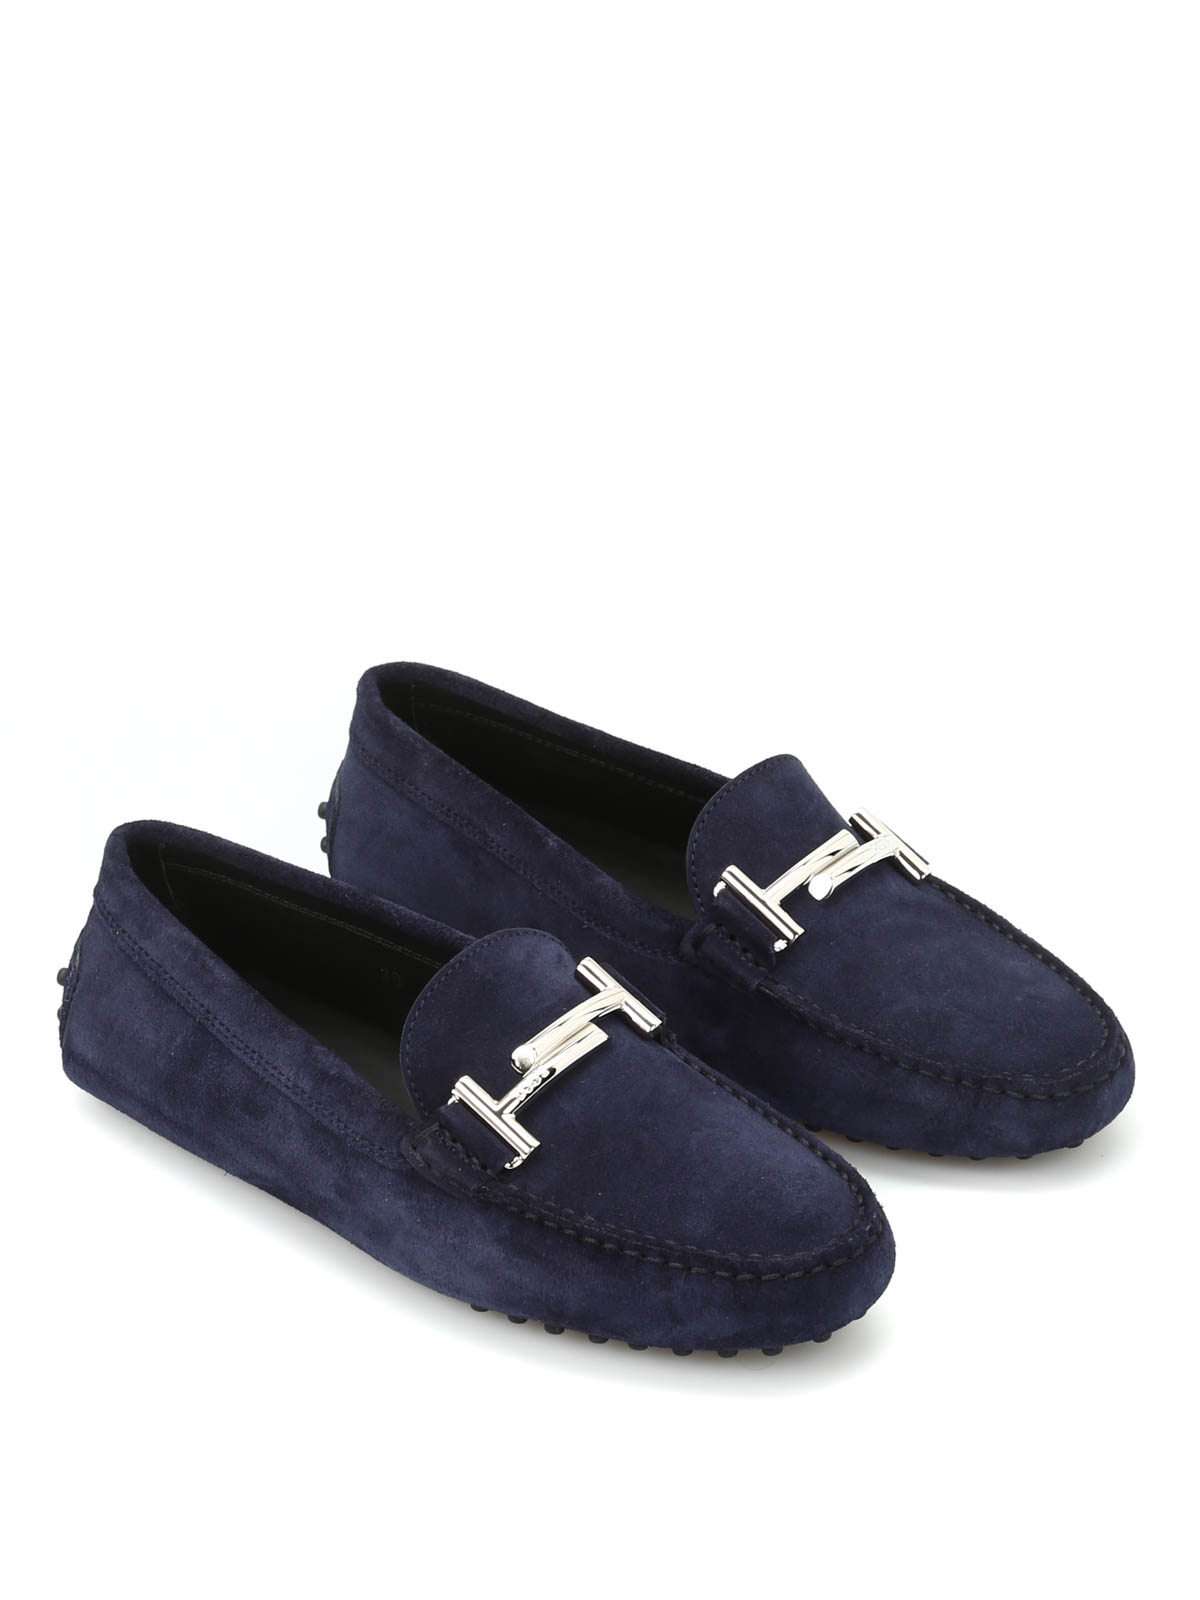 8862fdc8d42 Tod S - Gommini Maxi double T loafers - Loafers   Slippers ...